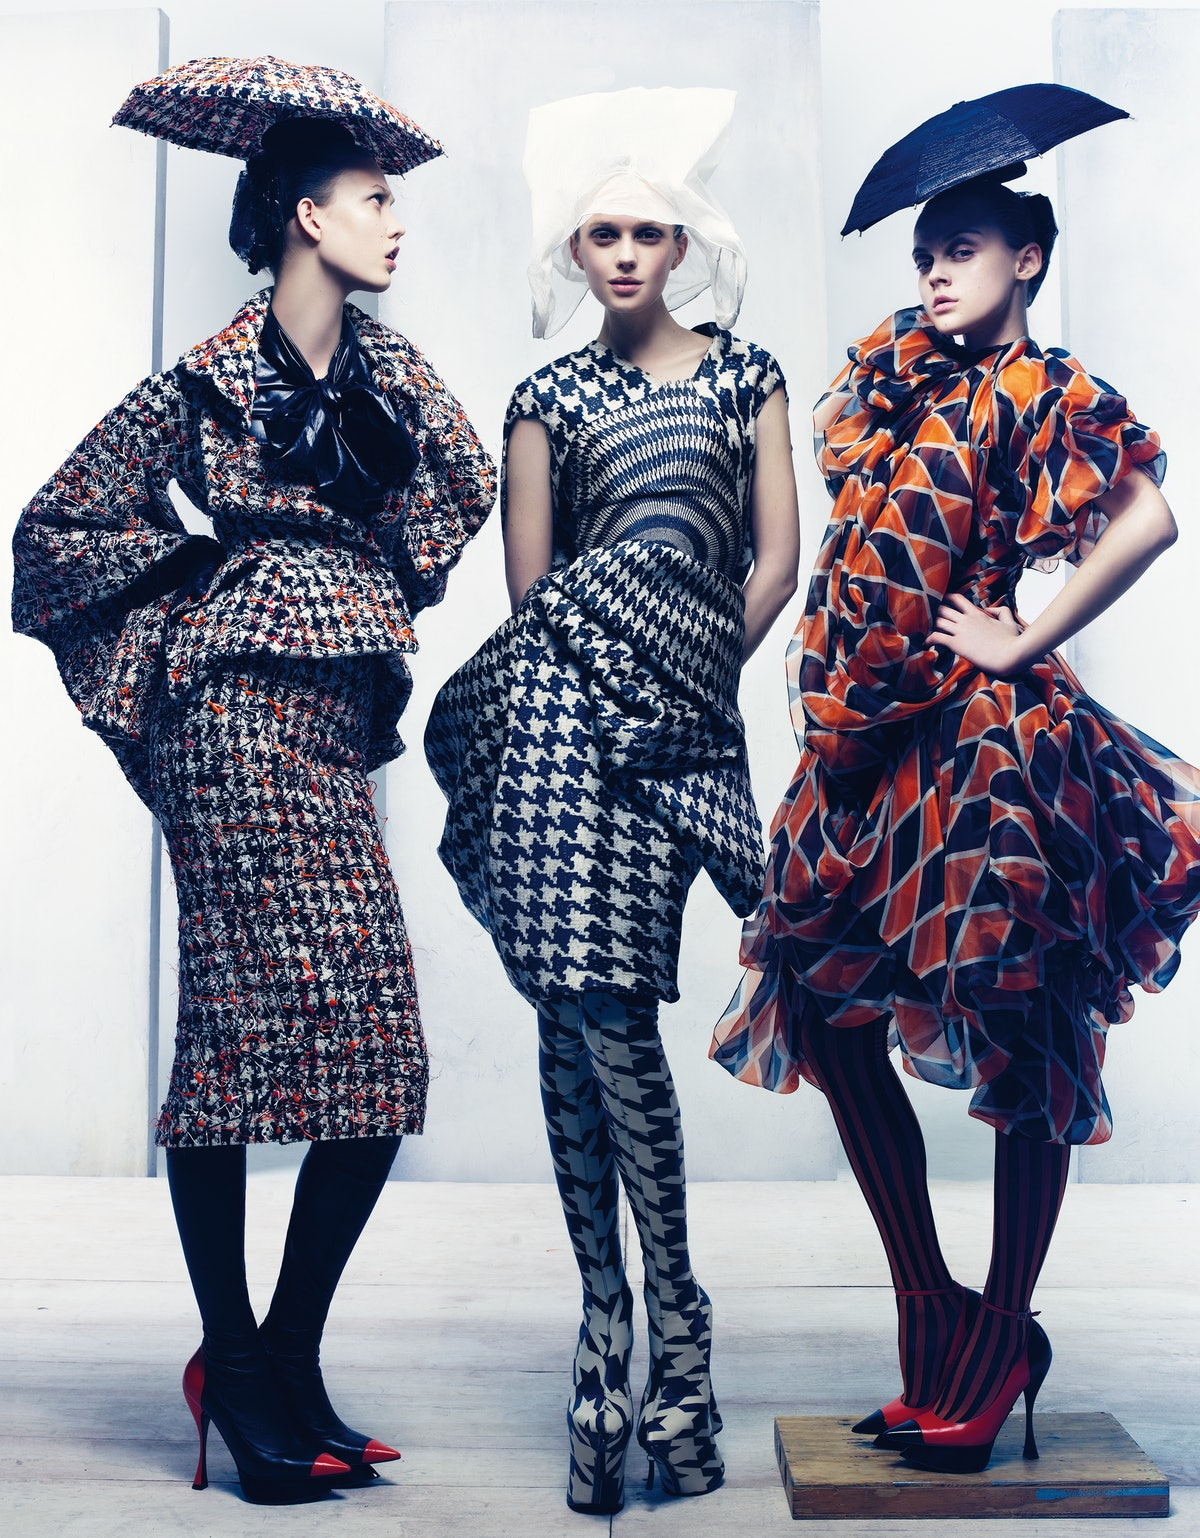 FROM LEFT: ALEXANDER McQUEEN'S SILK TWEED JACKET AND SKIRT AND POLYESTER BLOUSE, AT ALEXANDER McQUEEN, NEW YORK. PHILIP TREACY FOR ALEXANDER McQUEEN HAT; ALEXANDER McQUEEN GLOVES AND SHOES WITH ATTACHED HOSIERY. ALEXANDER McQUEEN'S SILK ORGANZA DRESS, TO ORDER, 212.645.1797. PHILIP TREACY FOR ALEXANDER McQUEEN HAT; ALEXANDER McQUEEN SHOES WITH ATTACHED HOSIERY. ALEXANDER McQUEEN'S SILK DRESS, AT ALEXANDER McQUEEN, NEW YORK. PHILIP TREACY FOR ALEXANDER McQUEEN HAT; ALEXANDER McQUEEN HOSIERY AND SHOES.